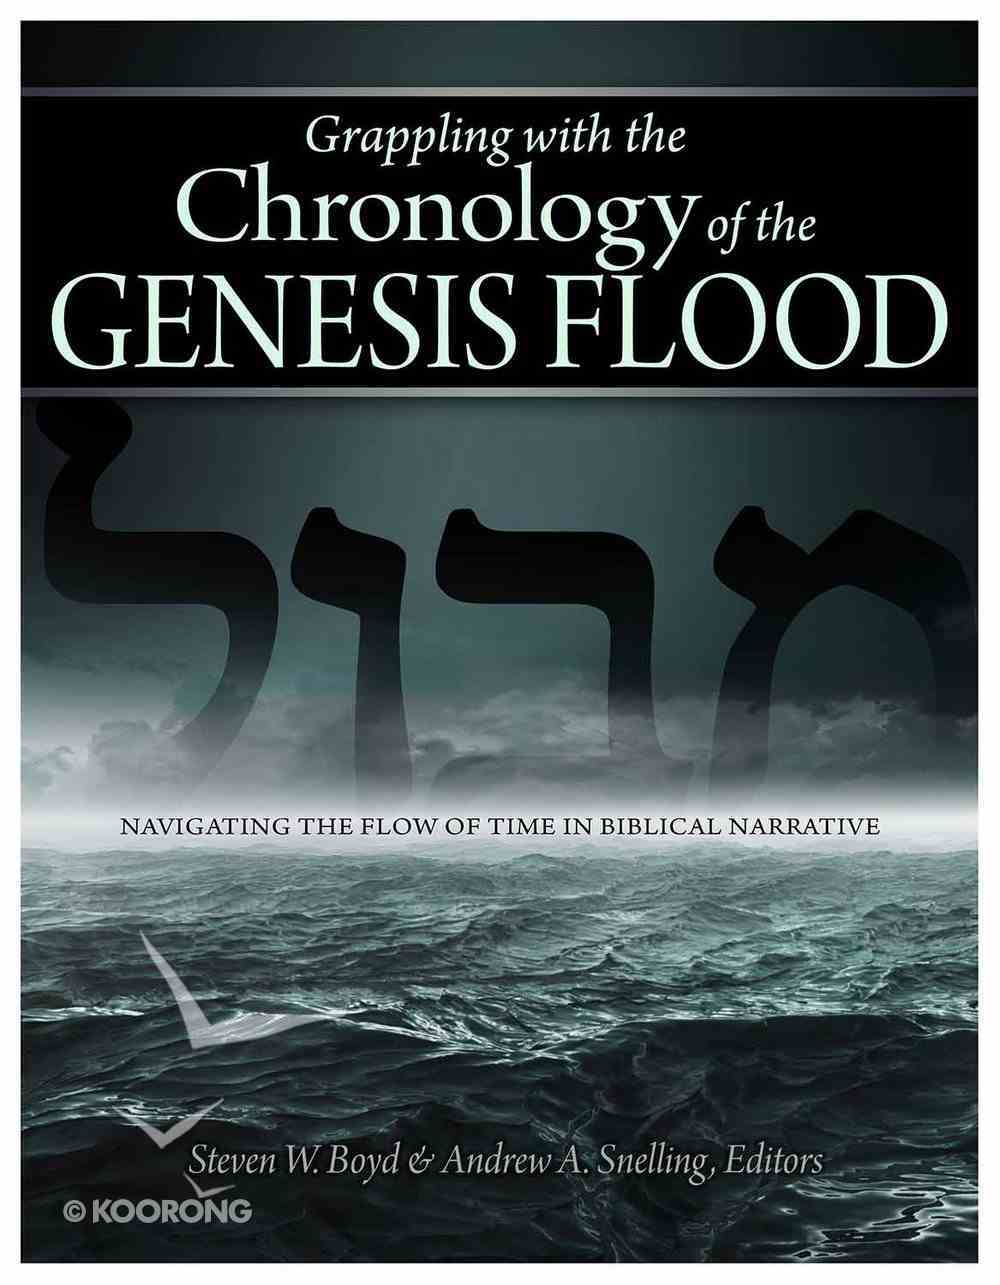 Grappling With the Chronology of the Genesis Flood: Navigating the Flow of Time in Biblical Narrative Paperback